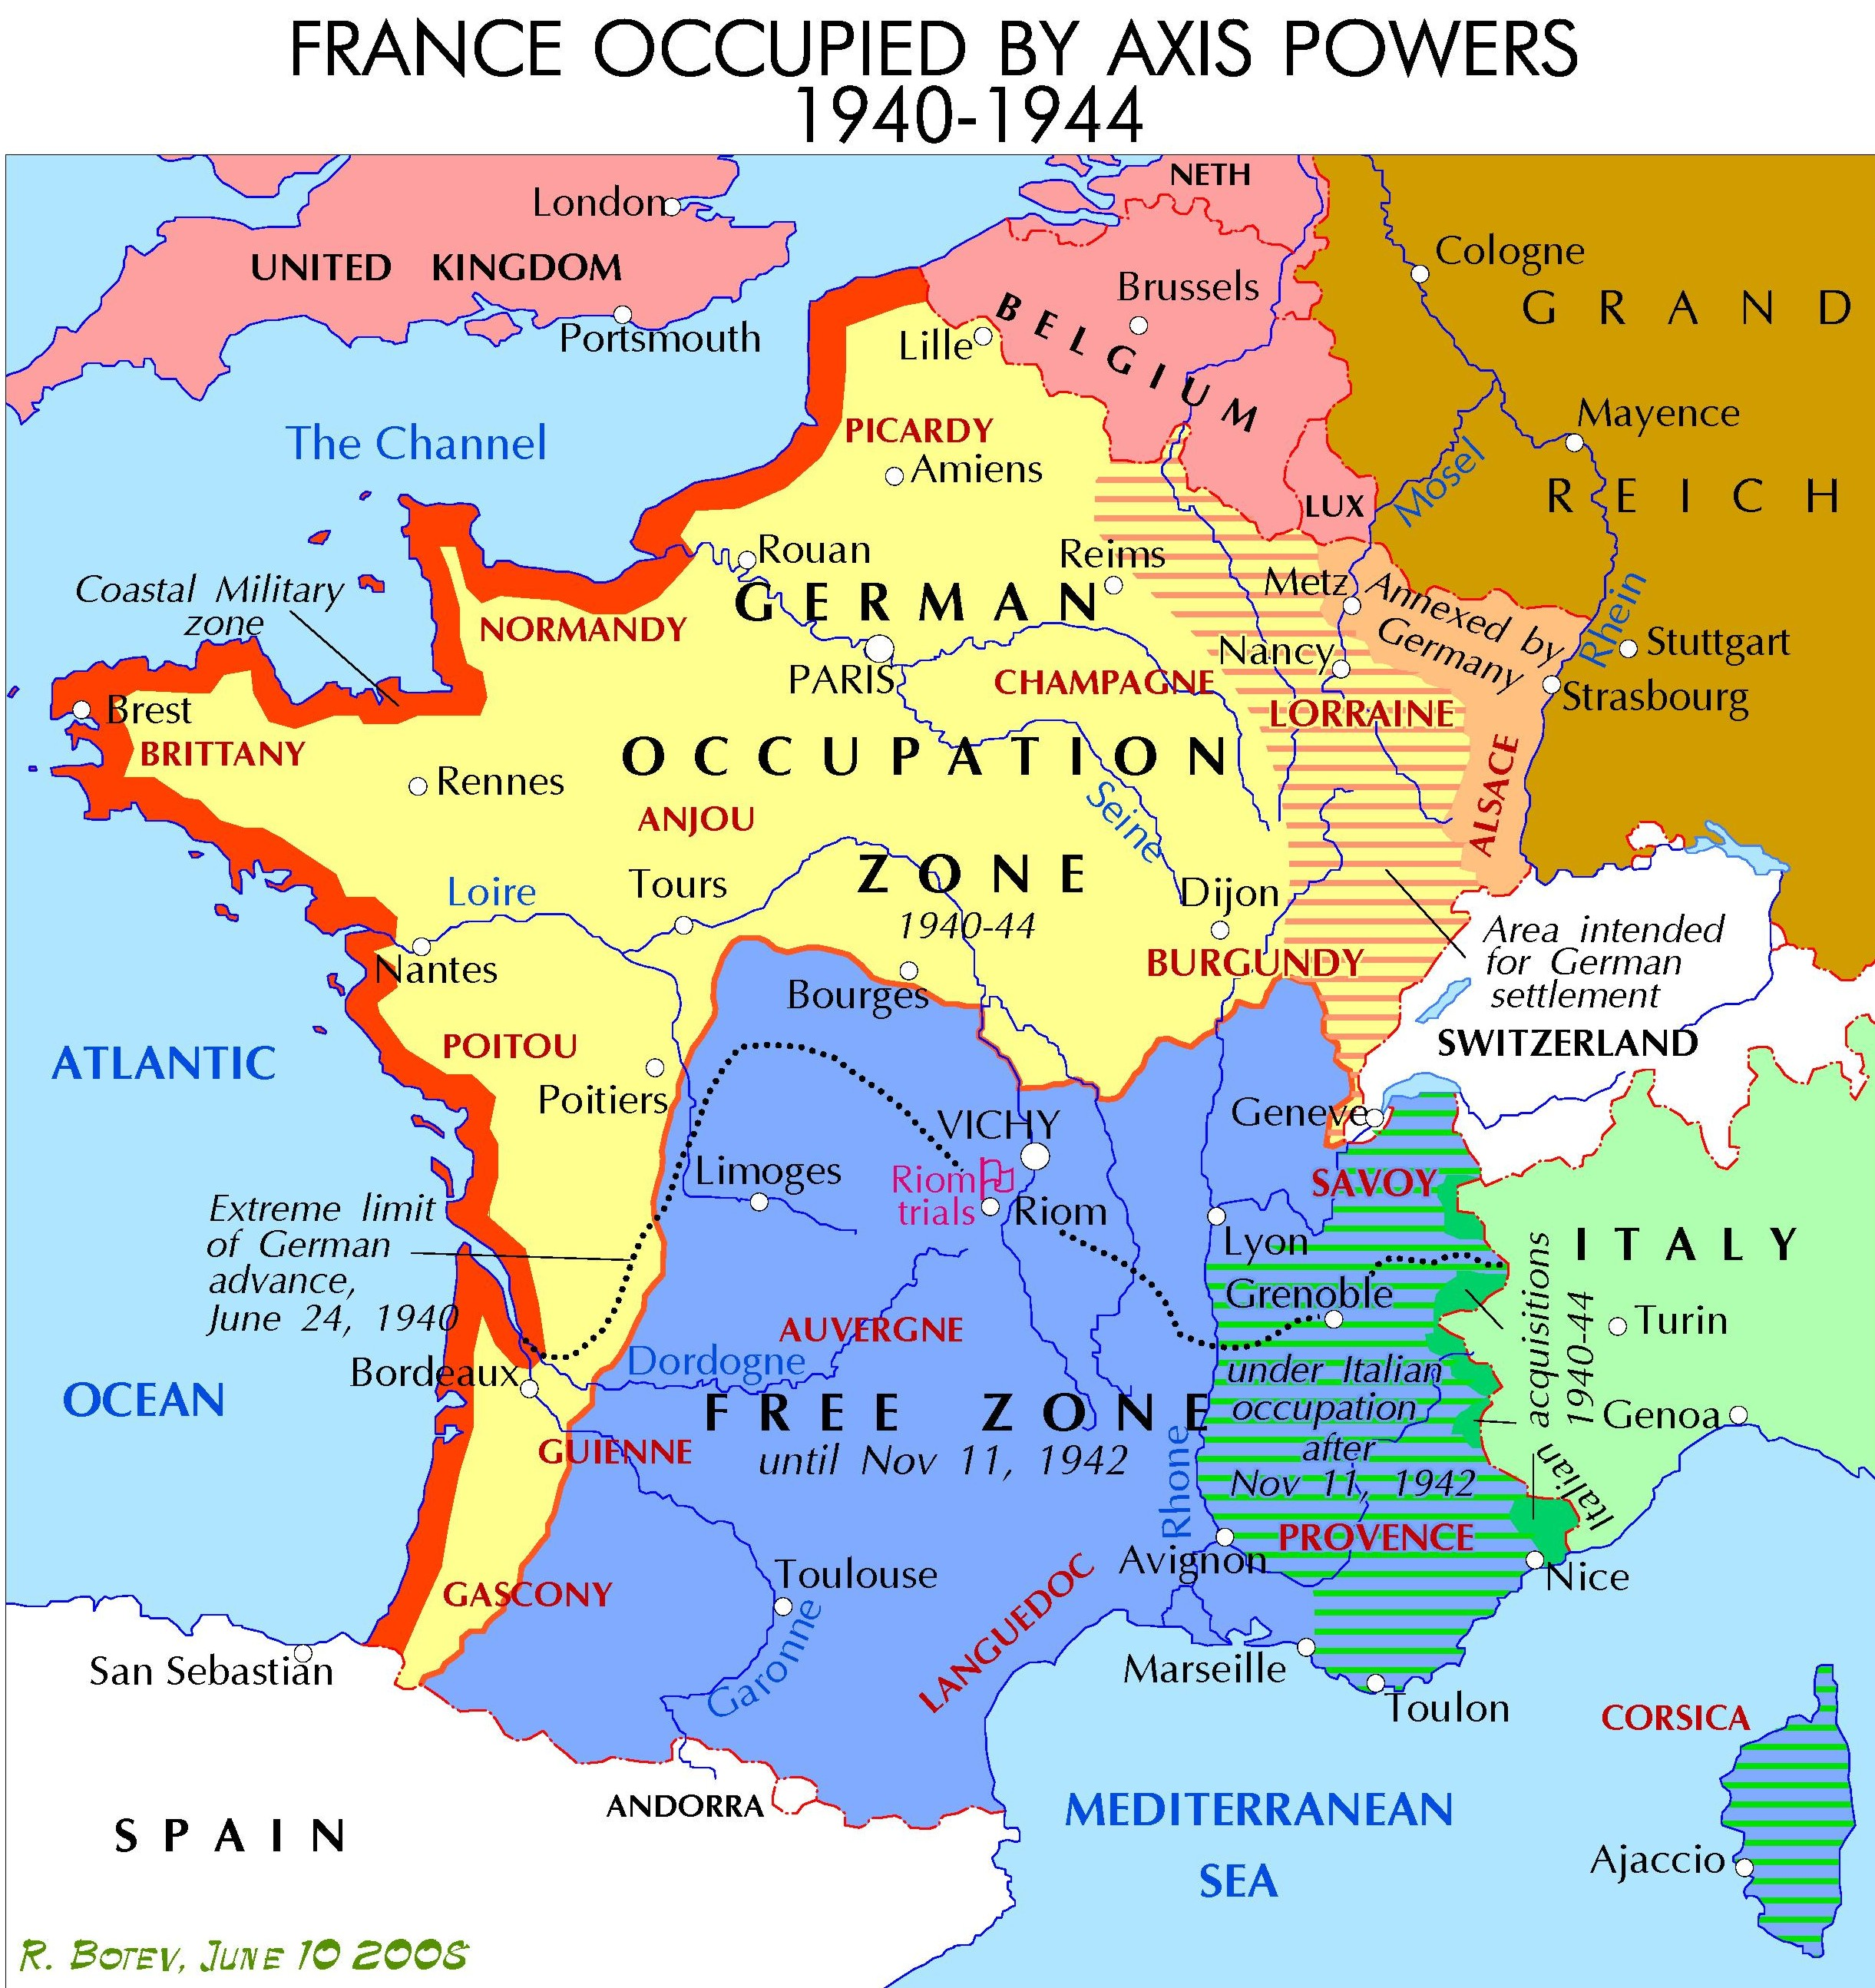 WWII in England and France | EF Educational Tours